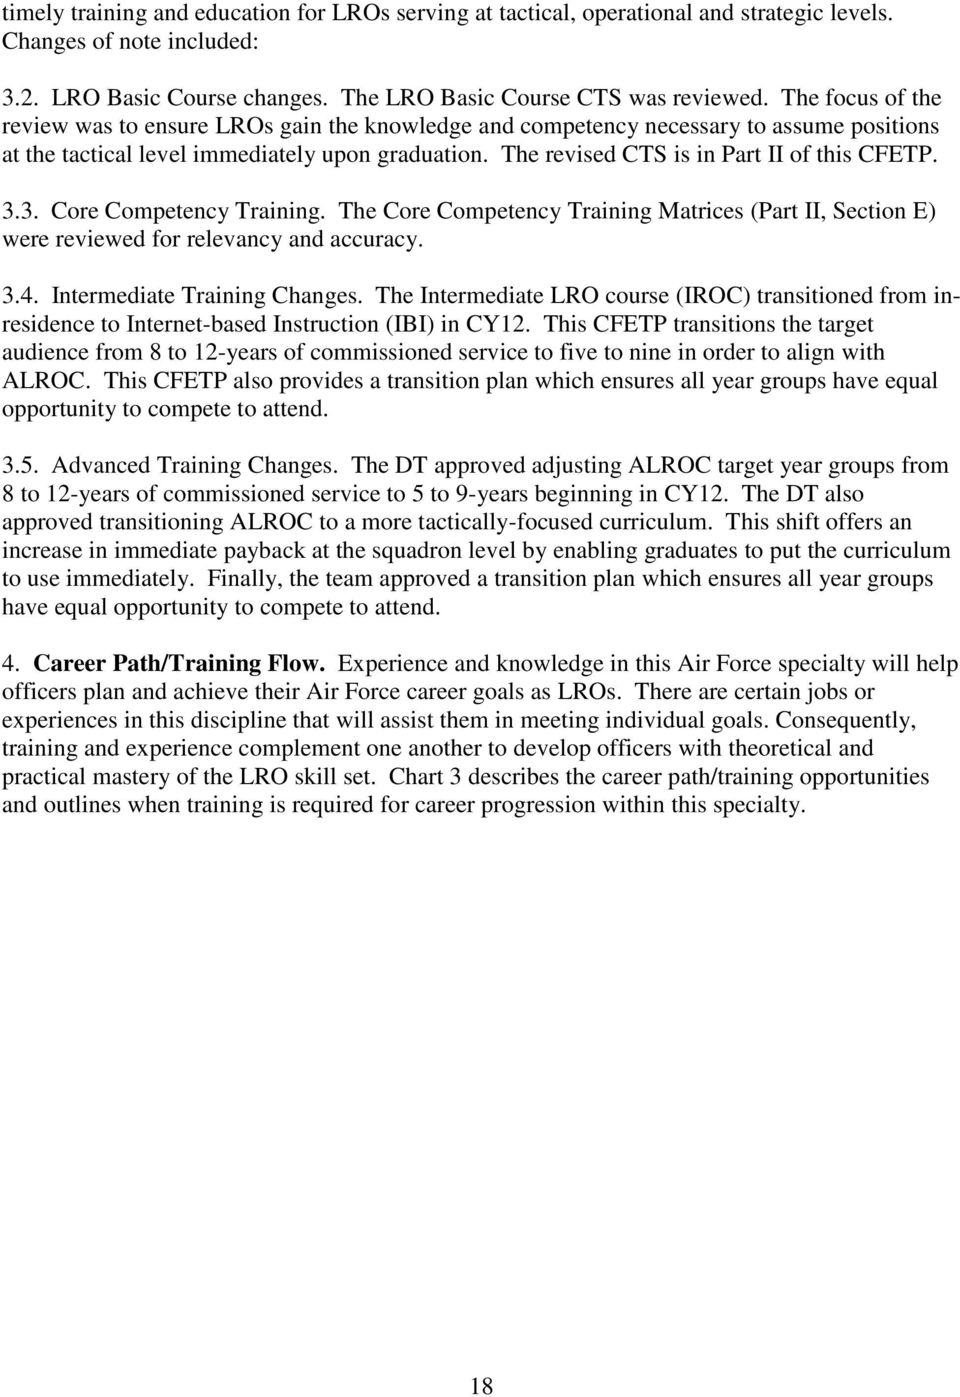 AFSC 21RX LOGISTICS READINESS OFFICER CAREER FIELD EDUCATION